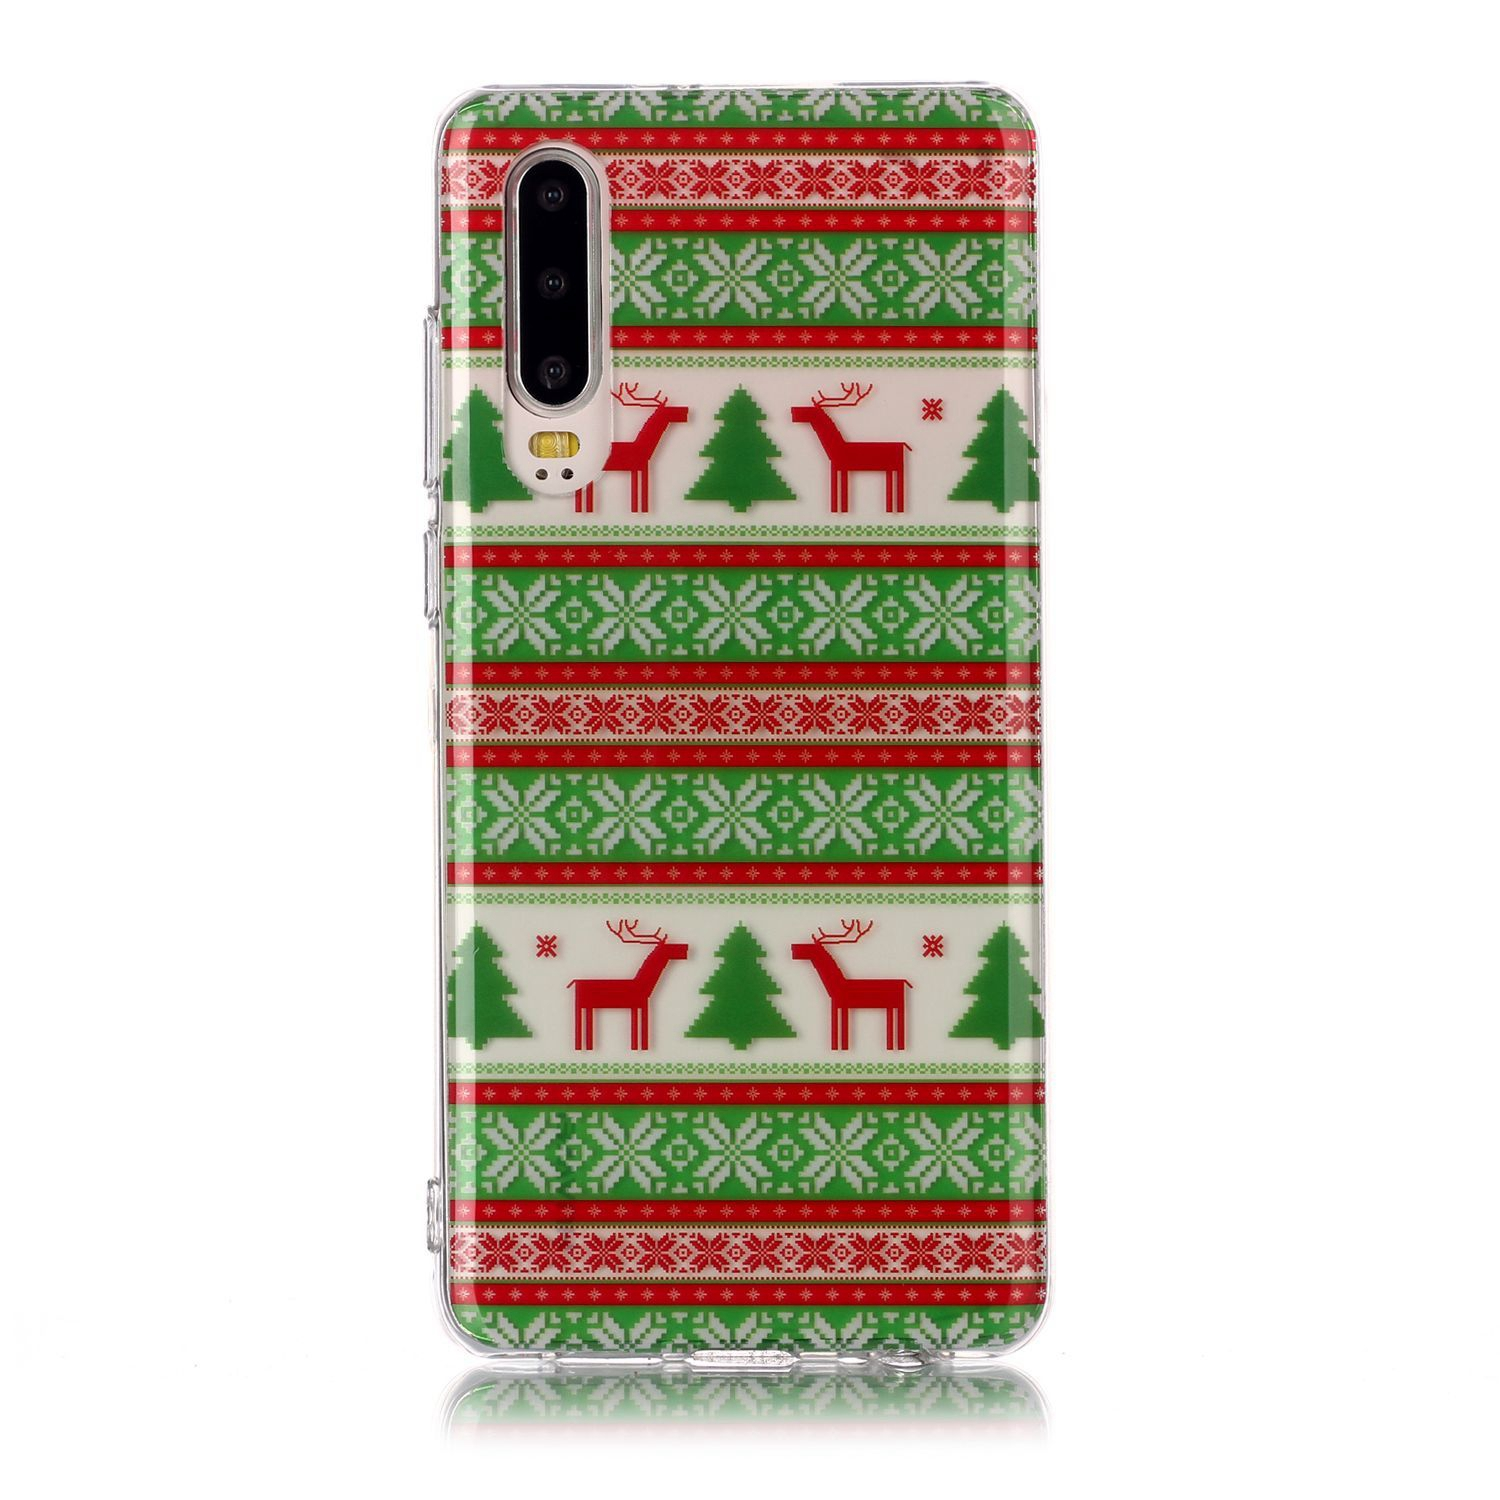 Christmas Phone Case.For Huawei P30 Christmas Phone Case Anti Fall Protective Shell Super Soft Tpu Smartphone Cover Birthday Gift